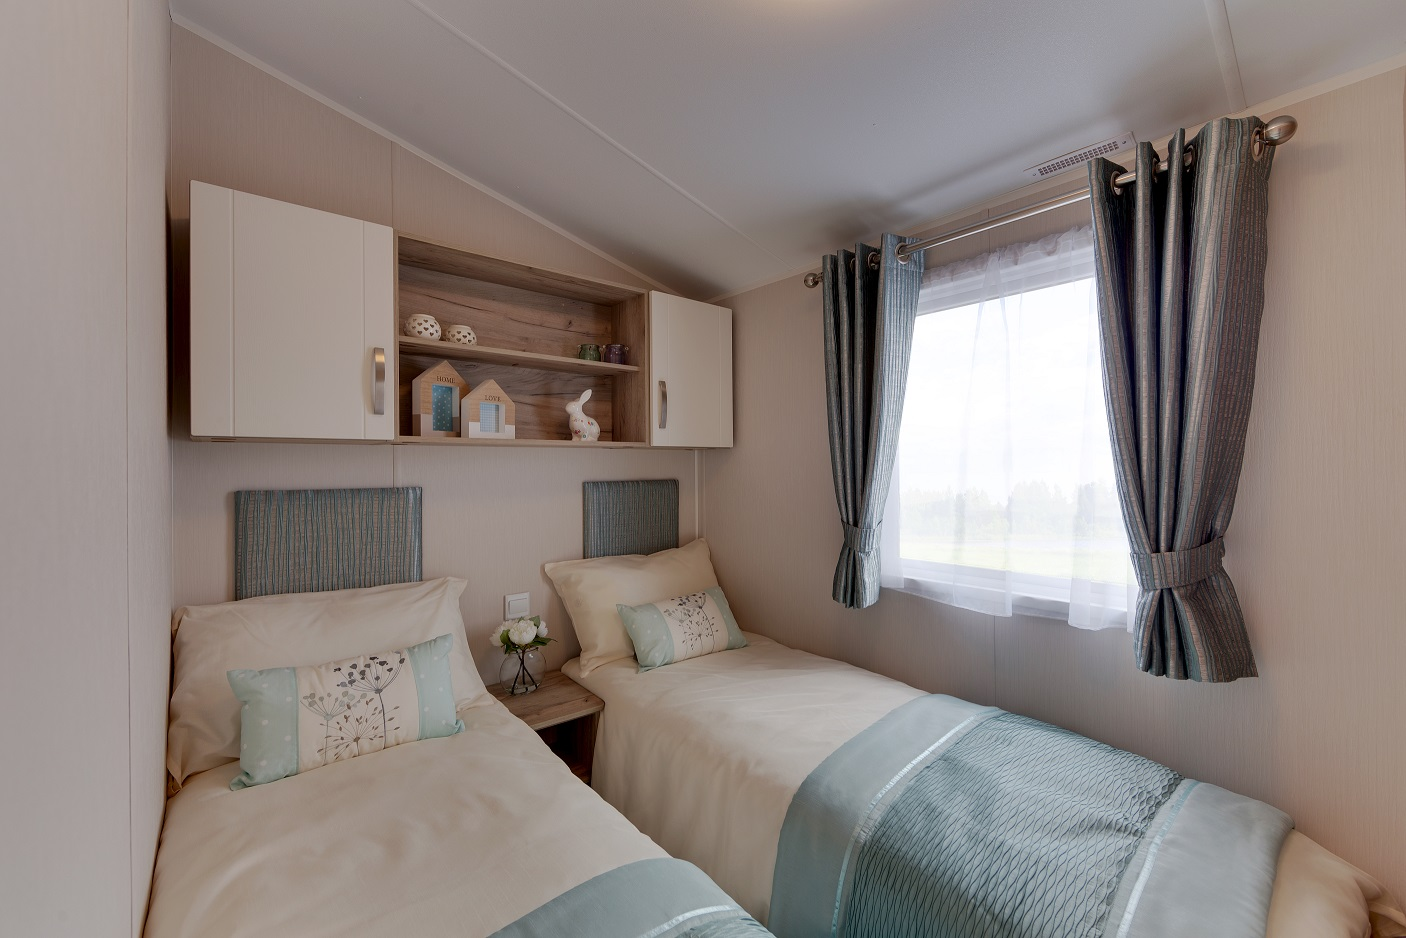 Willerby Skye - 3 Bedrooms: New Static Caravans and Holiday Homes for Sale, Langley Moor, Durham Image 3